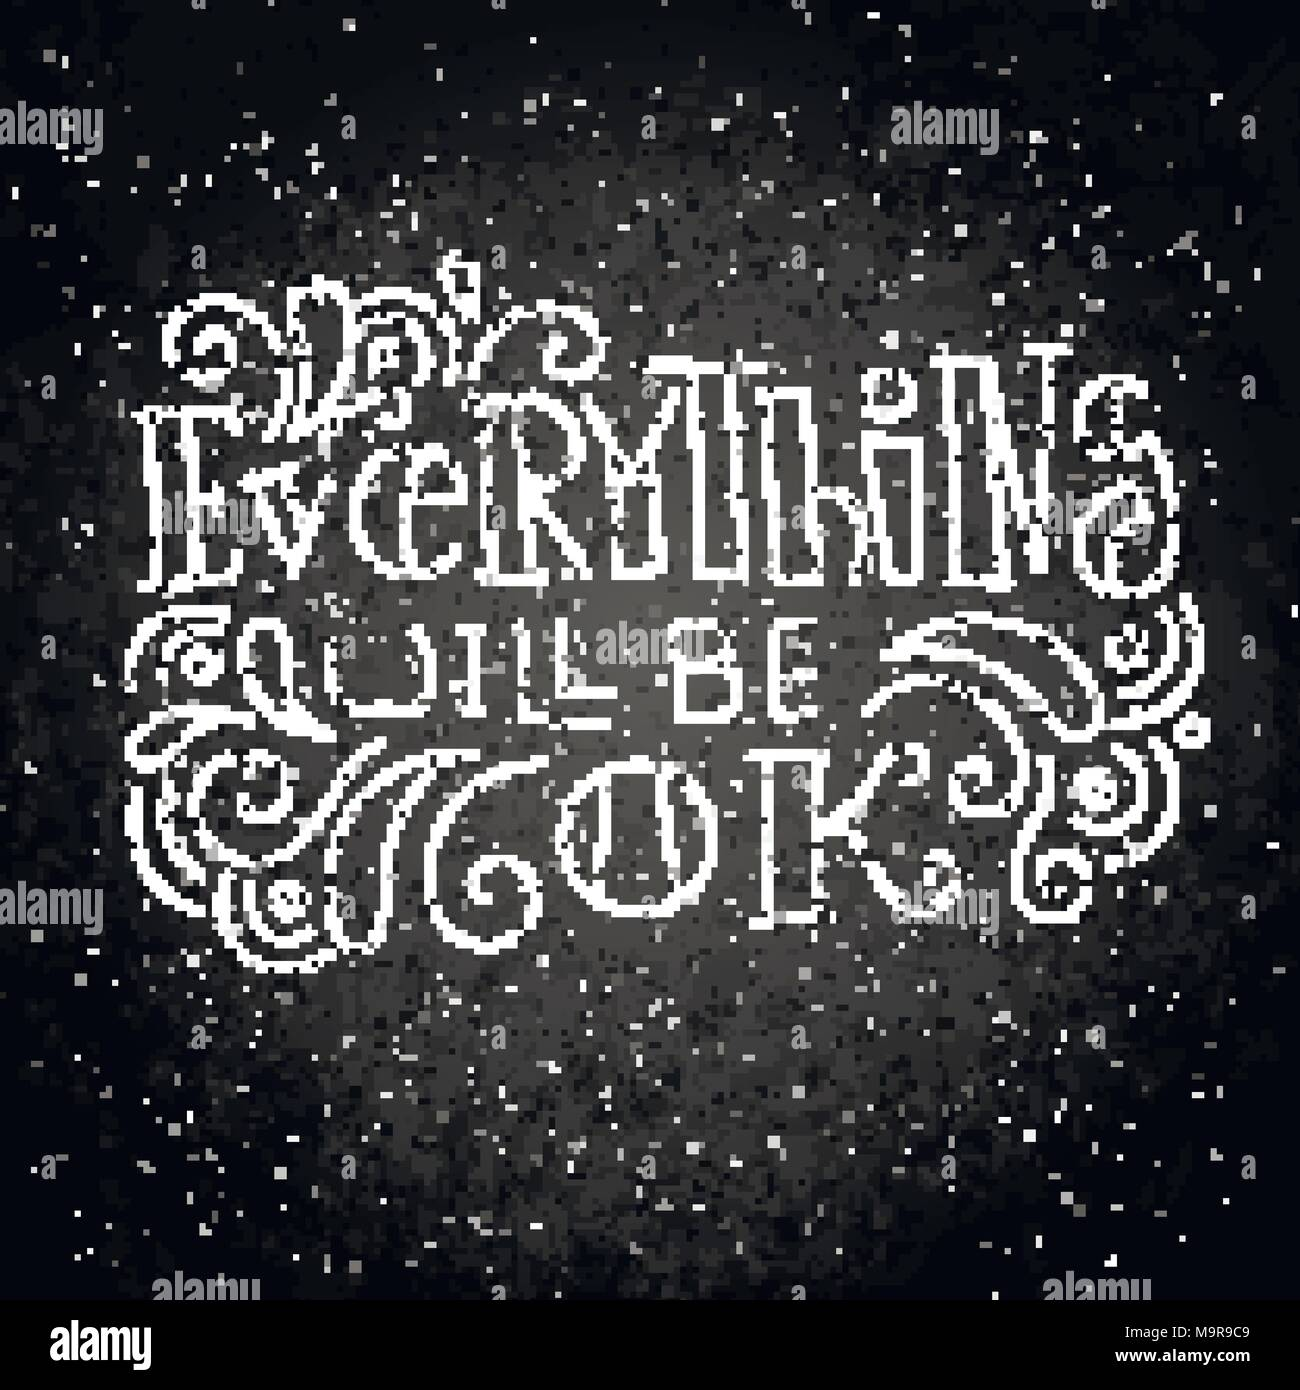 Everything Will Be Ok Hand Drawn Modern Image With Hand Lettering